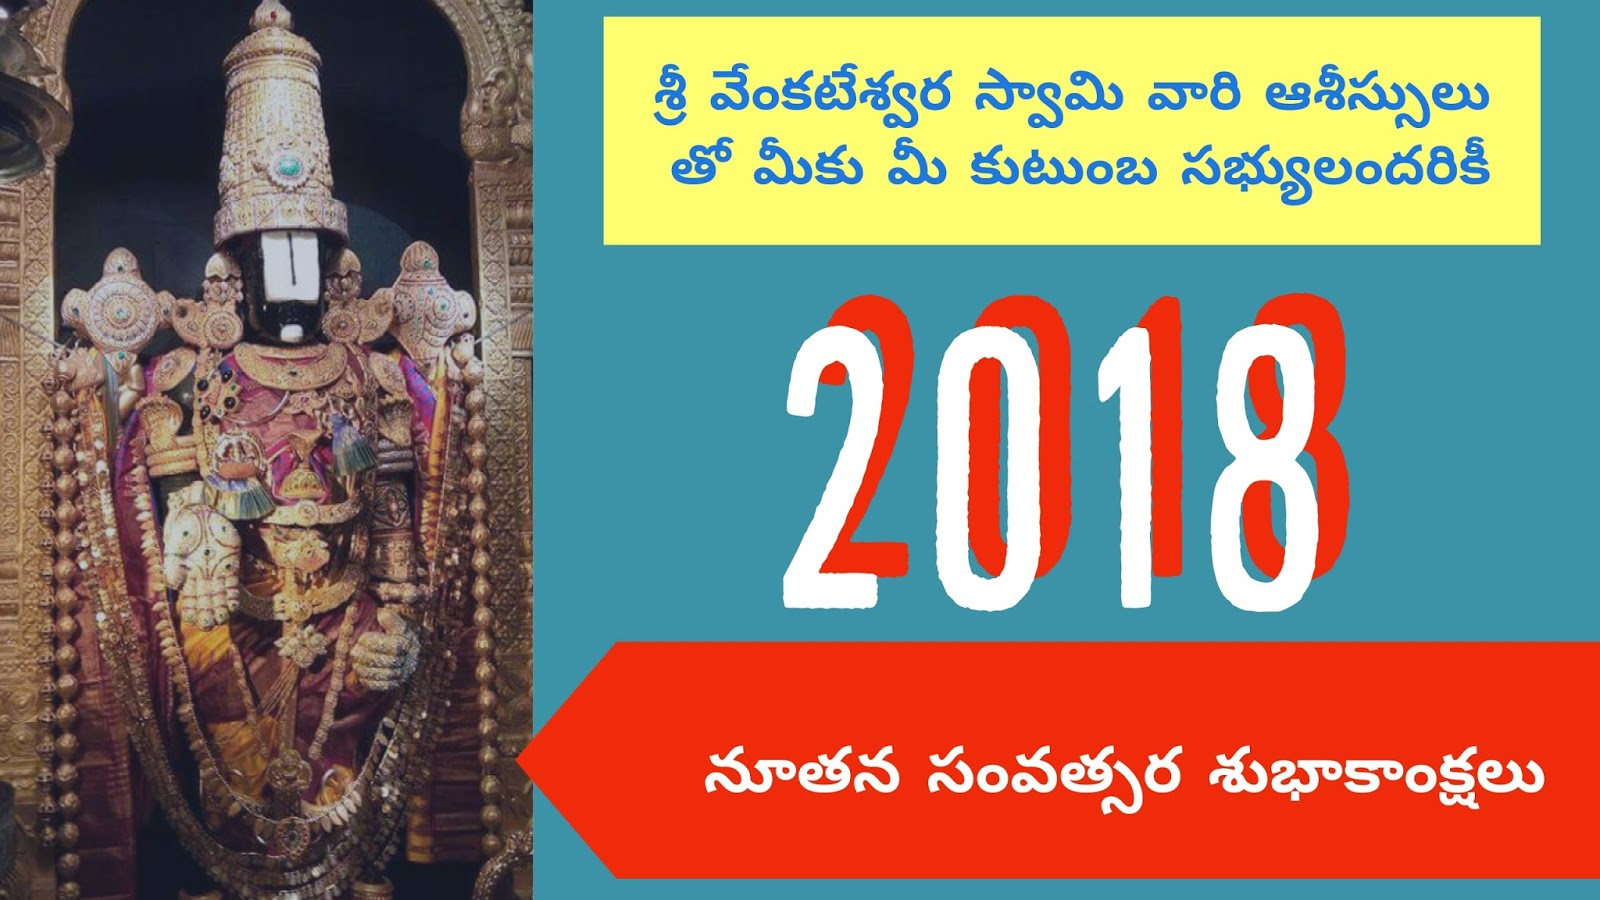 Greetingsve hd images love smile birthday wishes free download sri venkateswara swamy new year greetings ultra hd quality in telugu language kristyandbryce Image collections